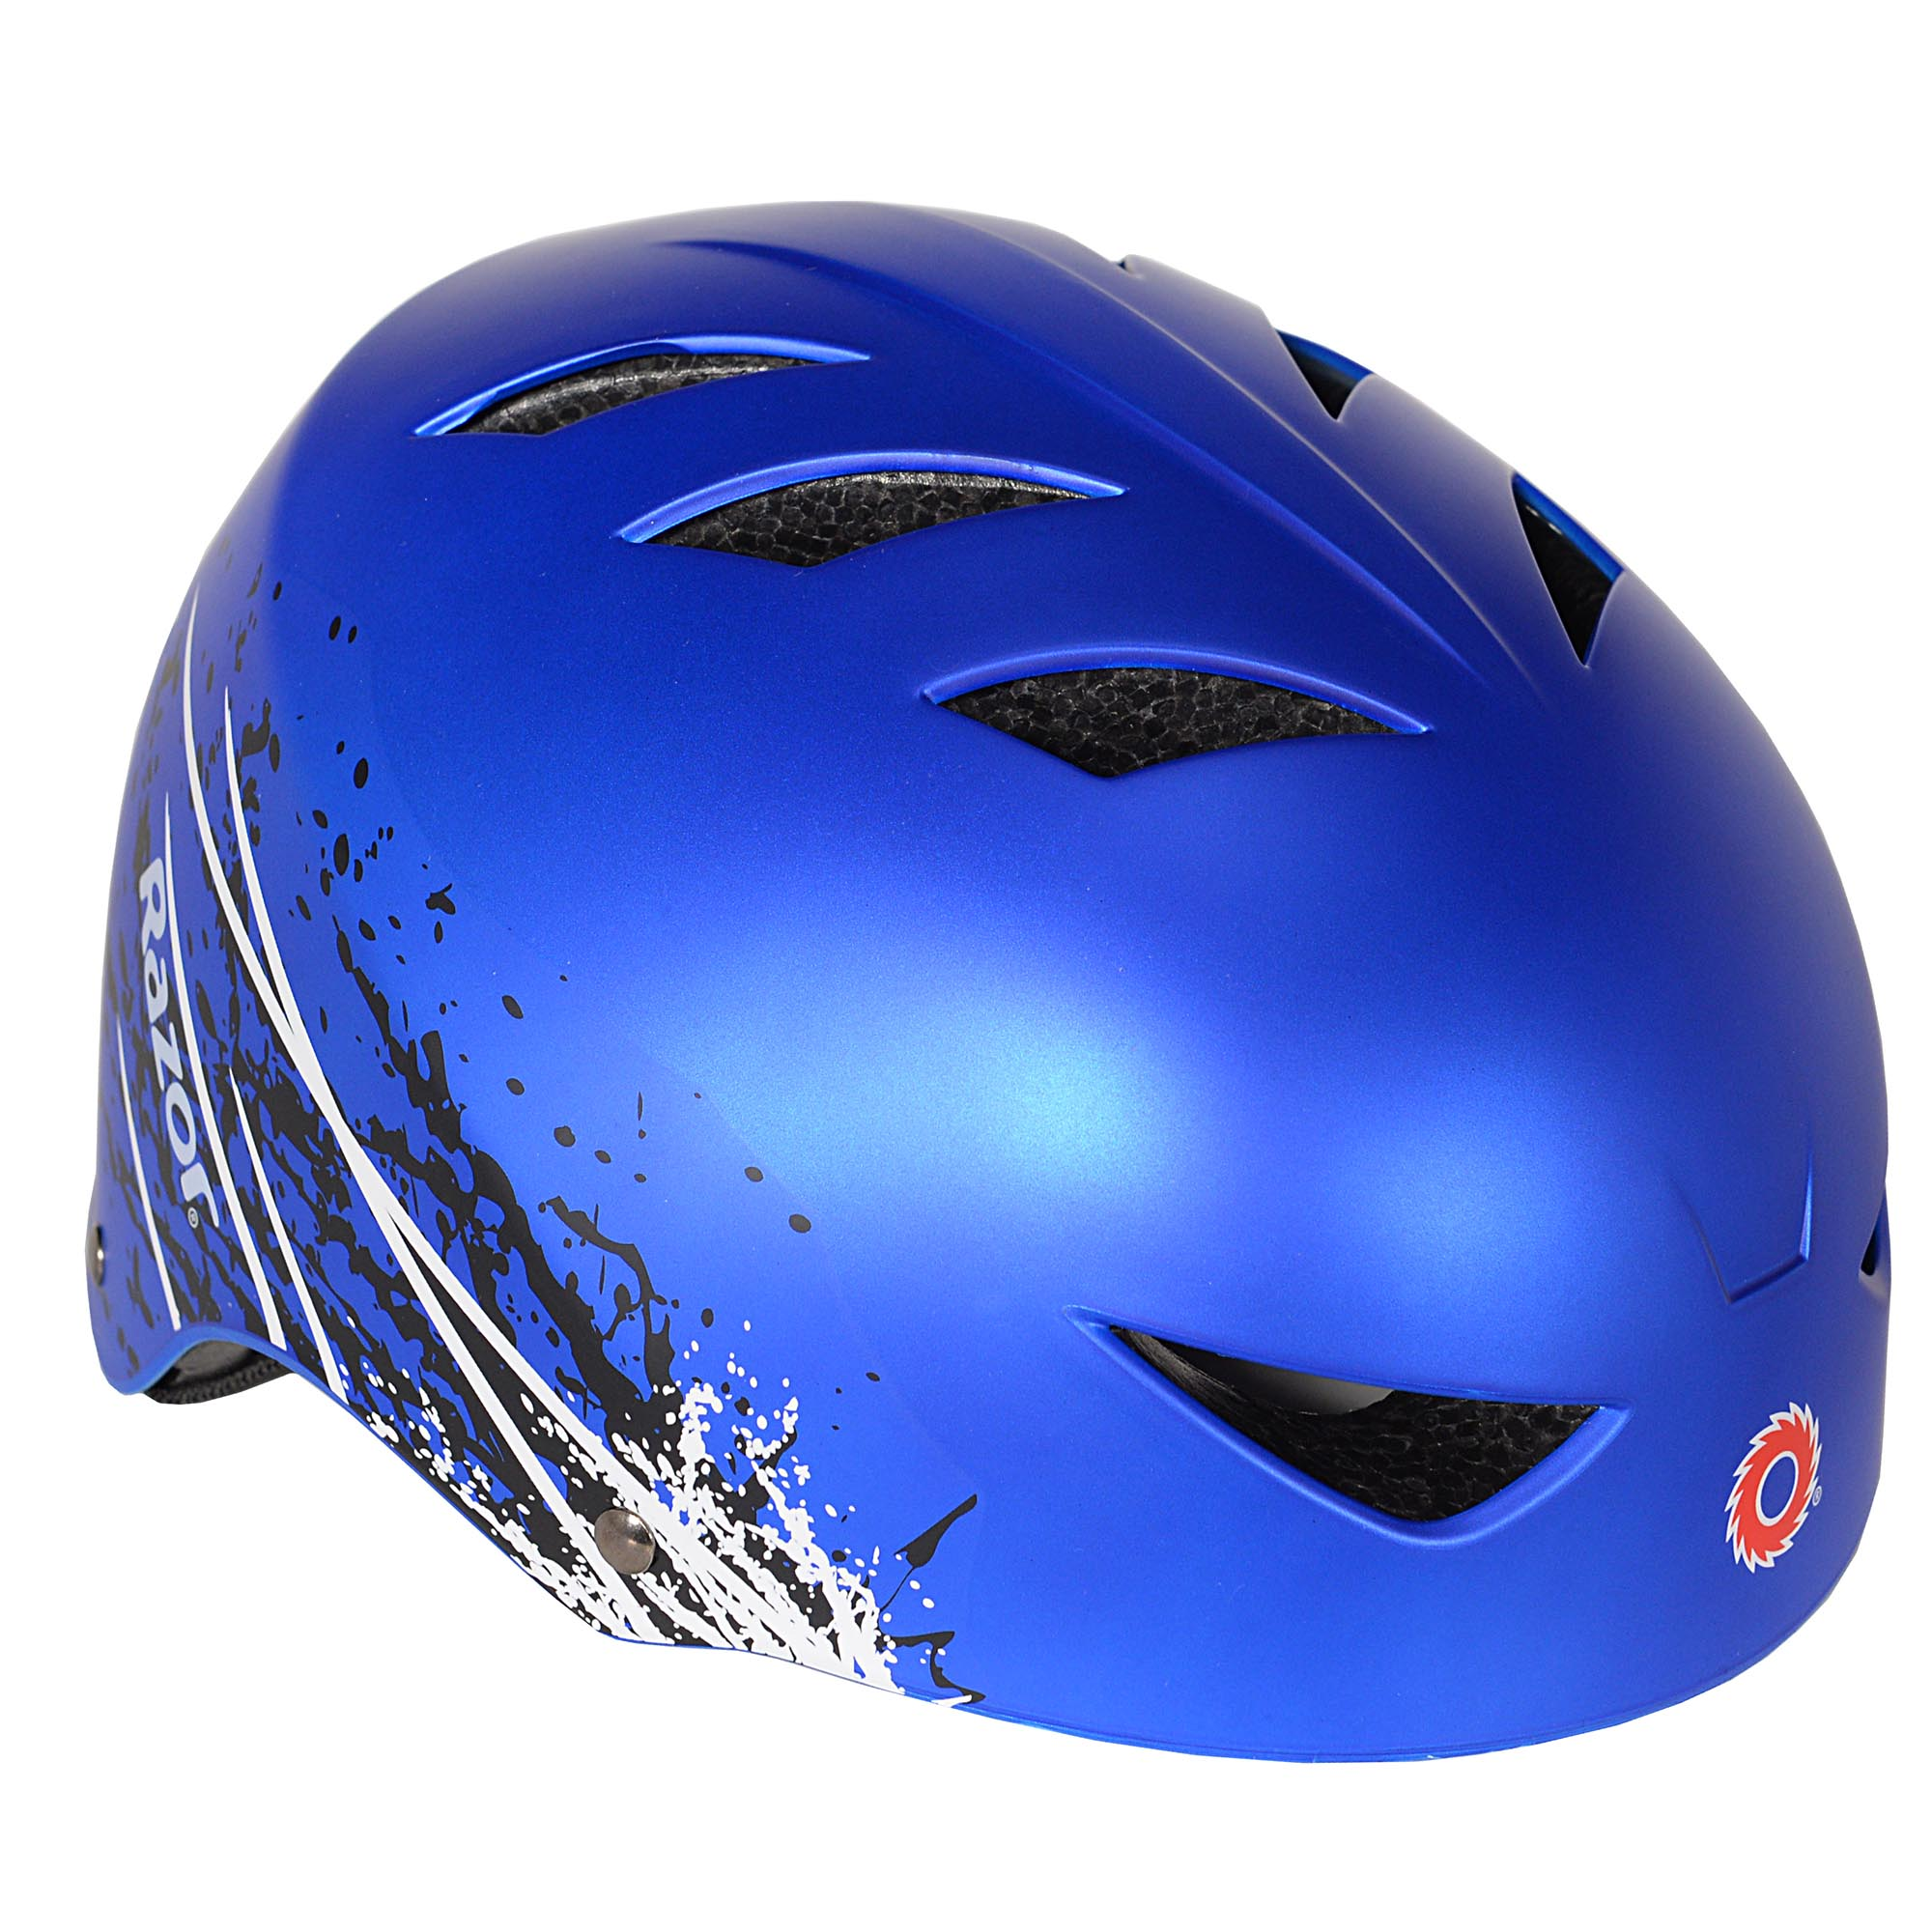 Razor Youth, Ambush Multi-Sport Helmet, Blue, For Ages 8-14